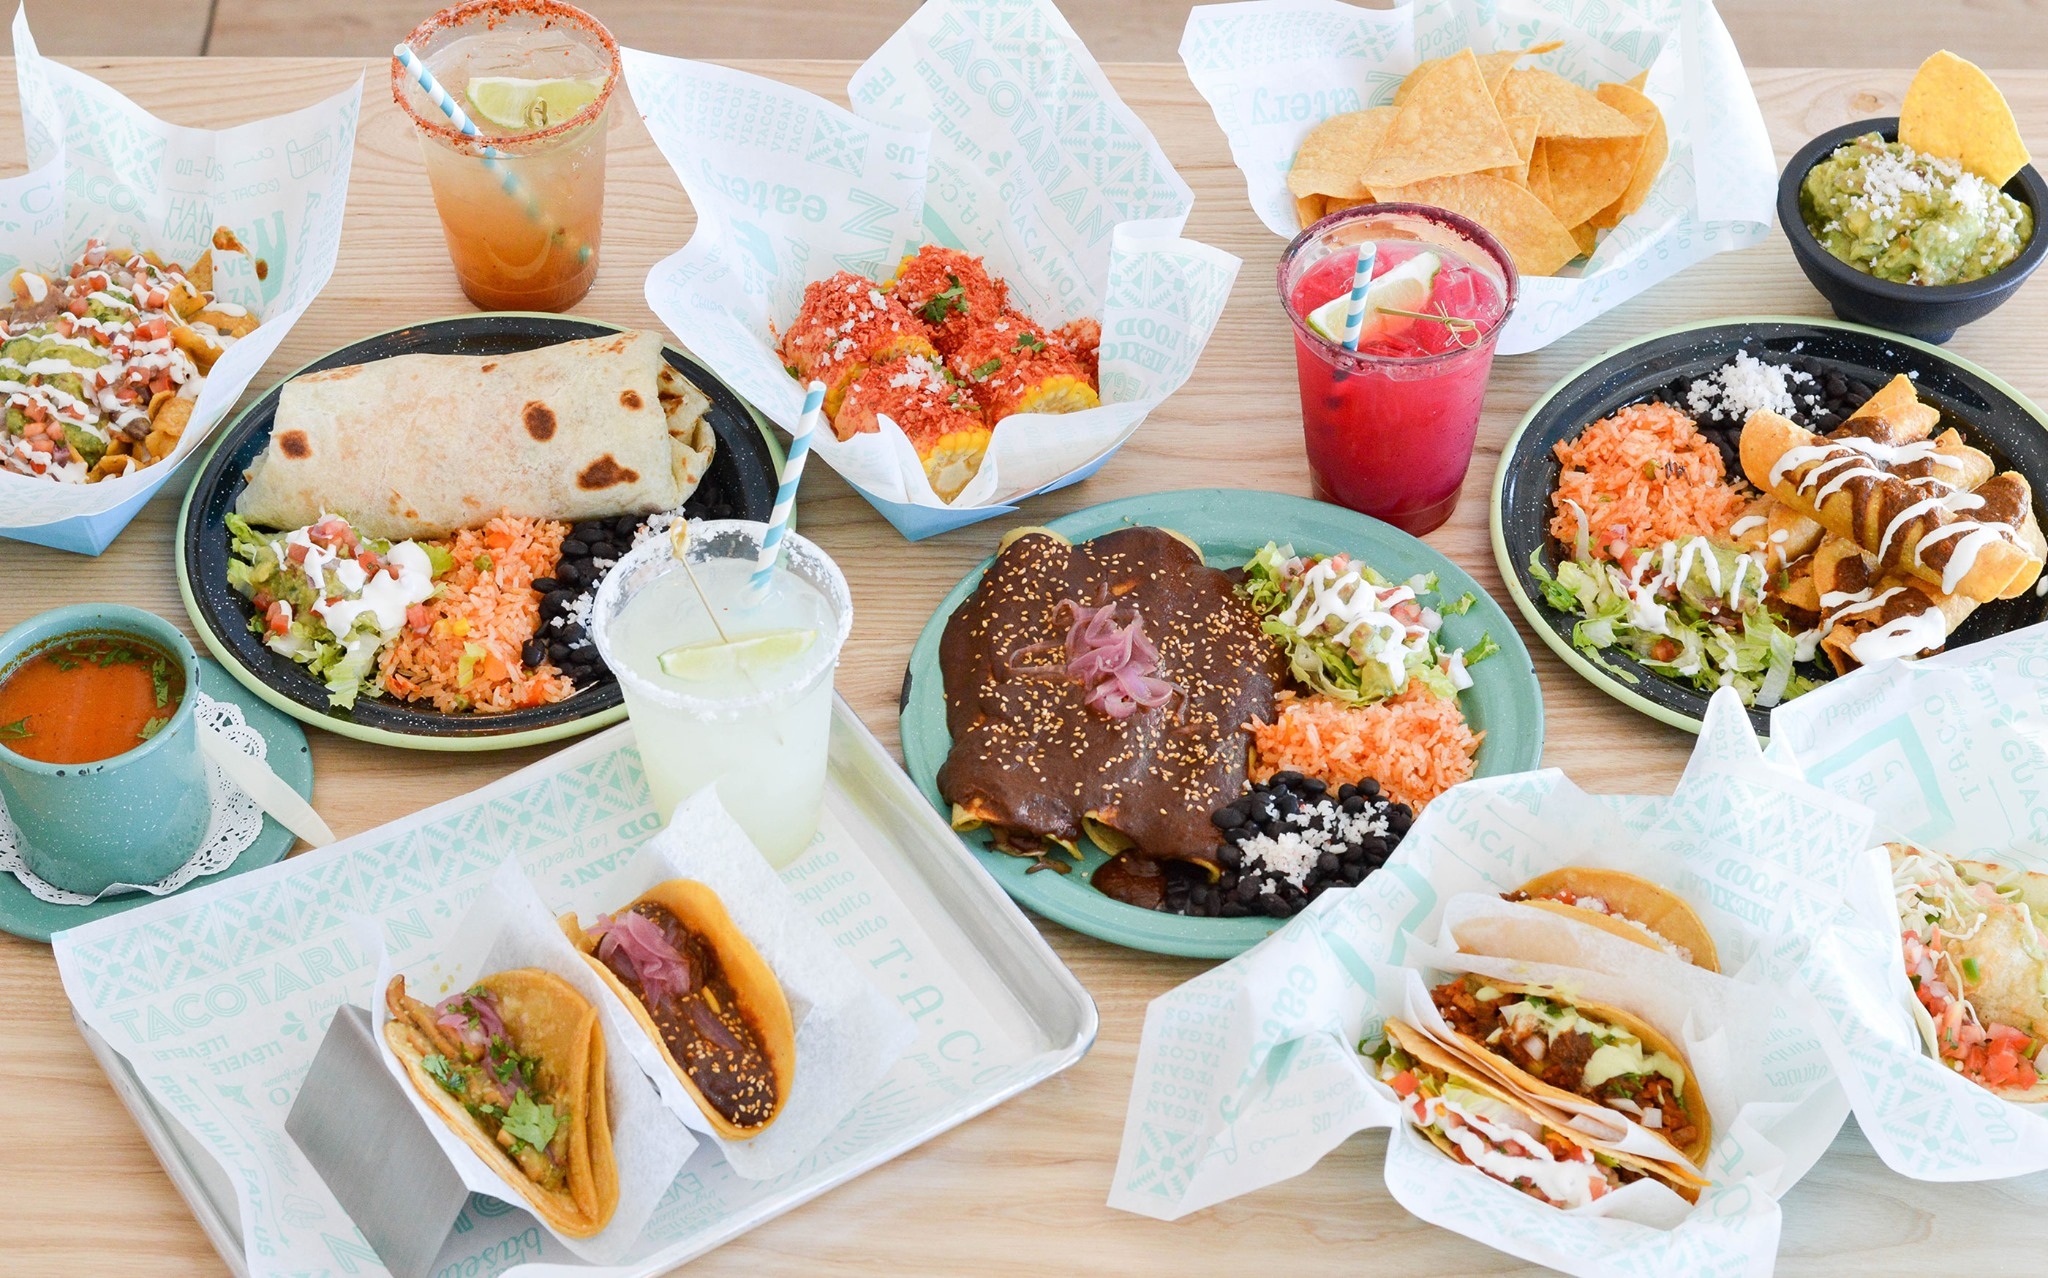 Tacos, margaritas, and more